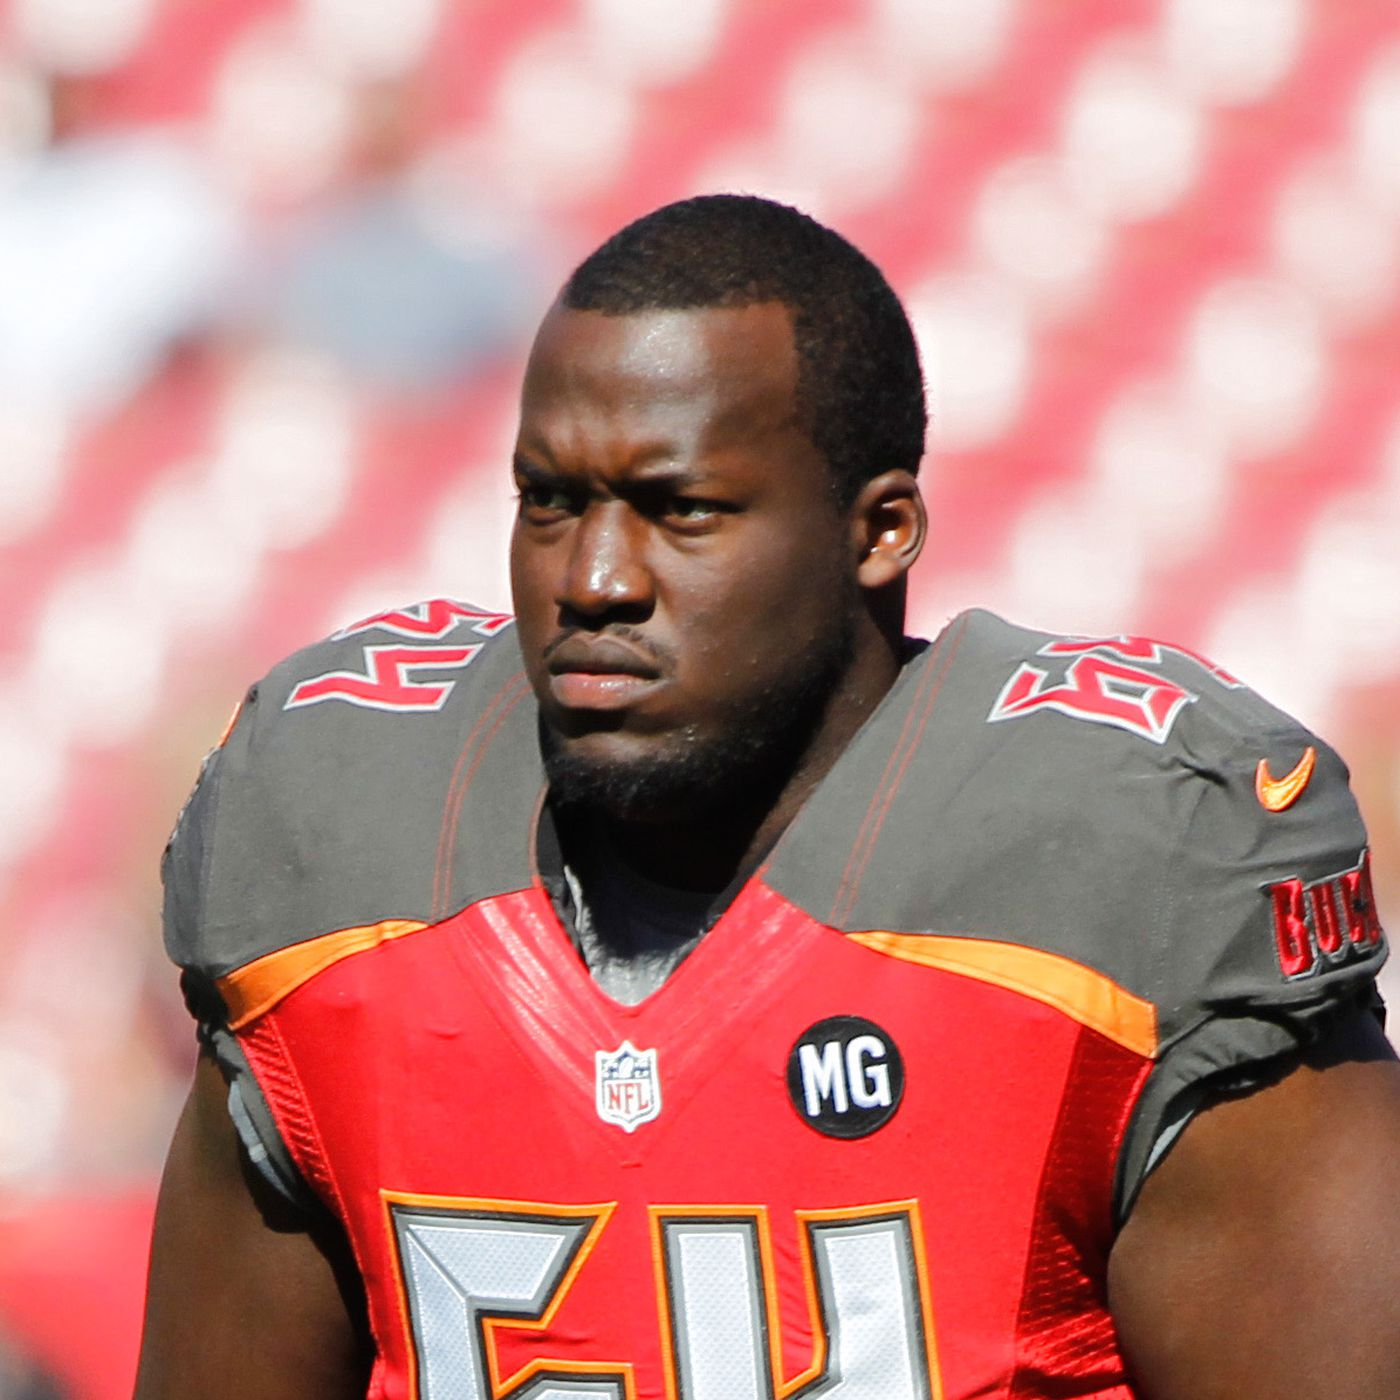 new product eab1a 0e831 Kevin Pamphile showed potential in Sunday's game - Bucs Nation